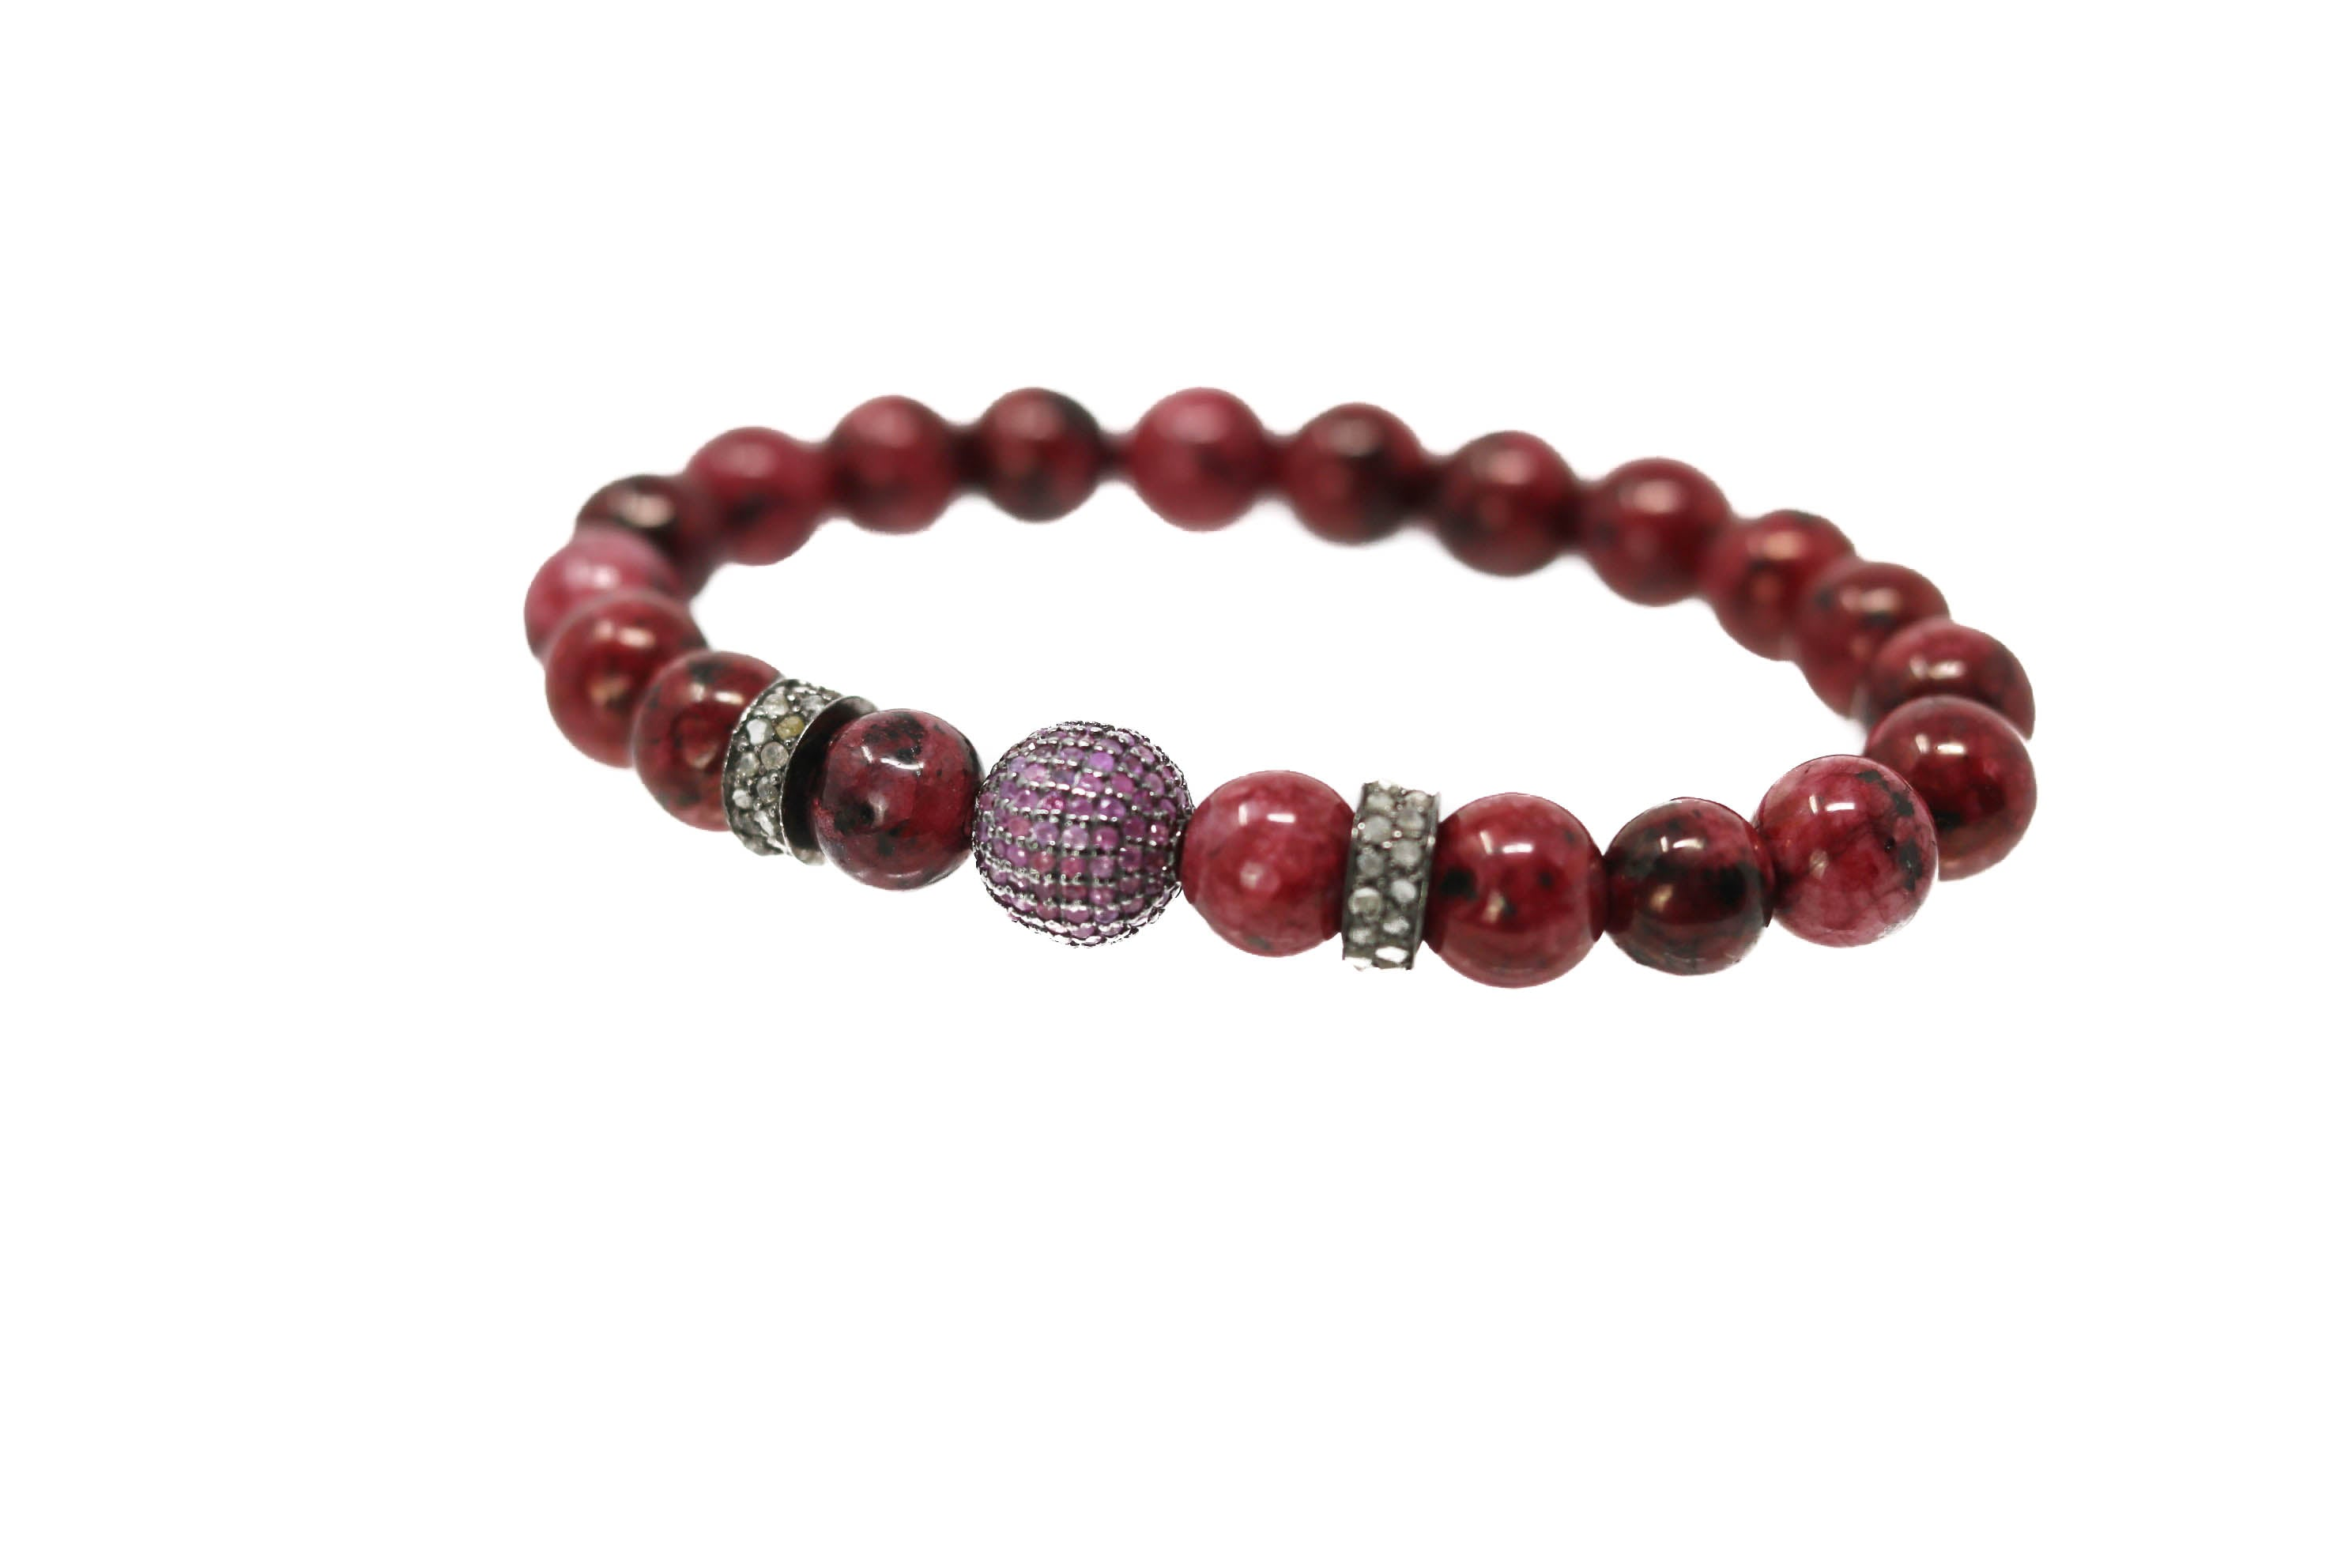 Ruby Red Ruby beads